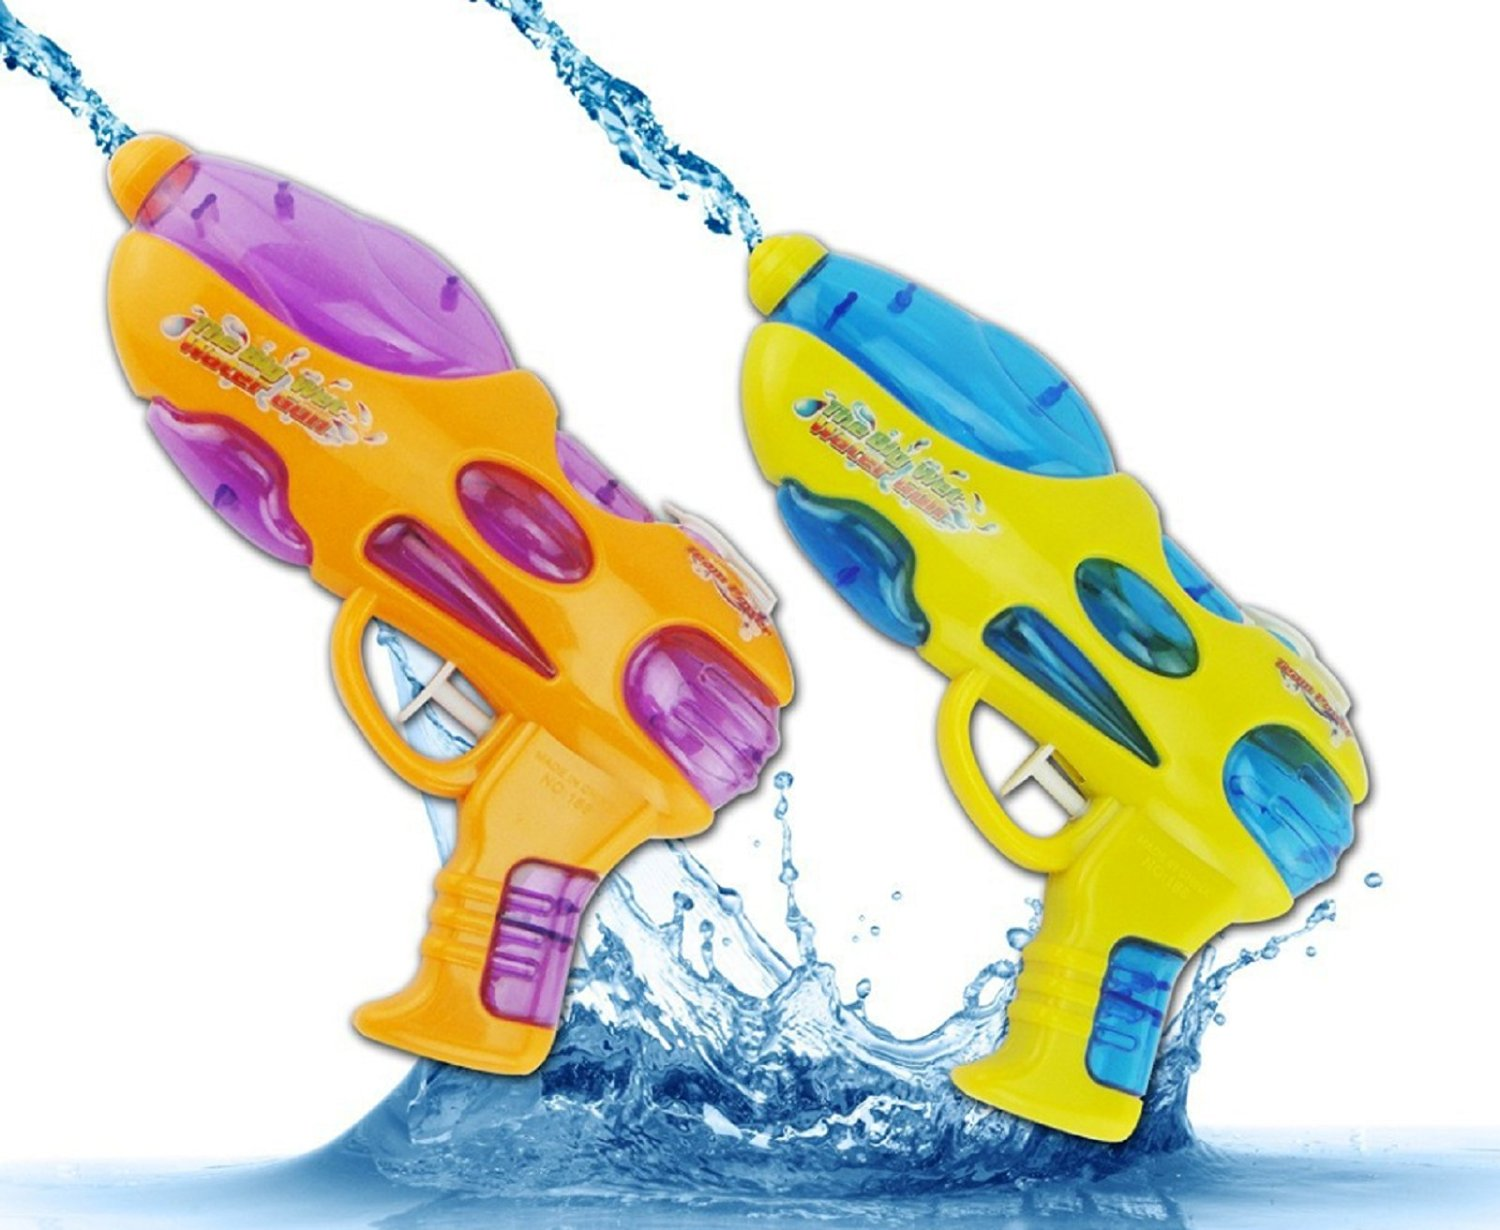 NEW!! Nerf Guns Water Gun Pressure Gun Hot Sale Limited > 3 Years Old Soft Gun Child Toy Pistol Bullet Gift (Yellow)